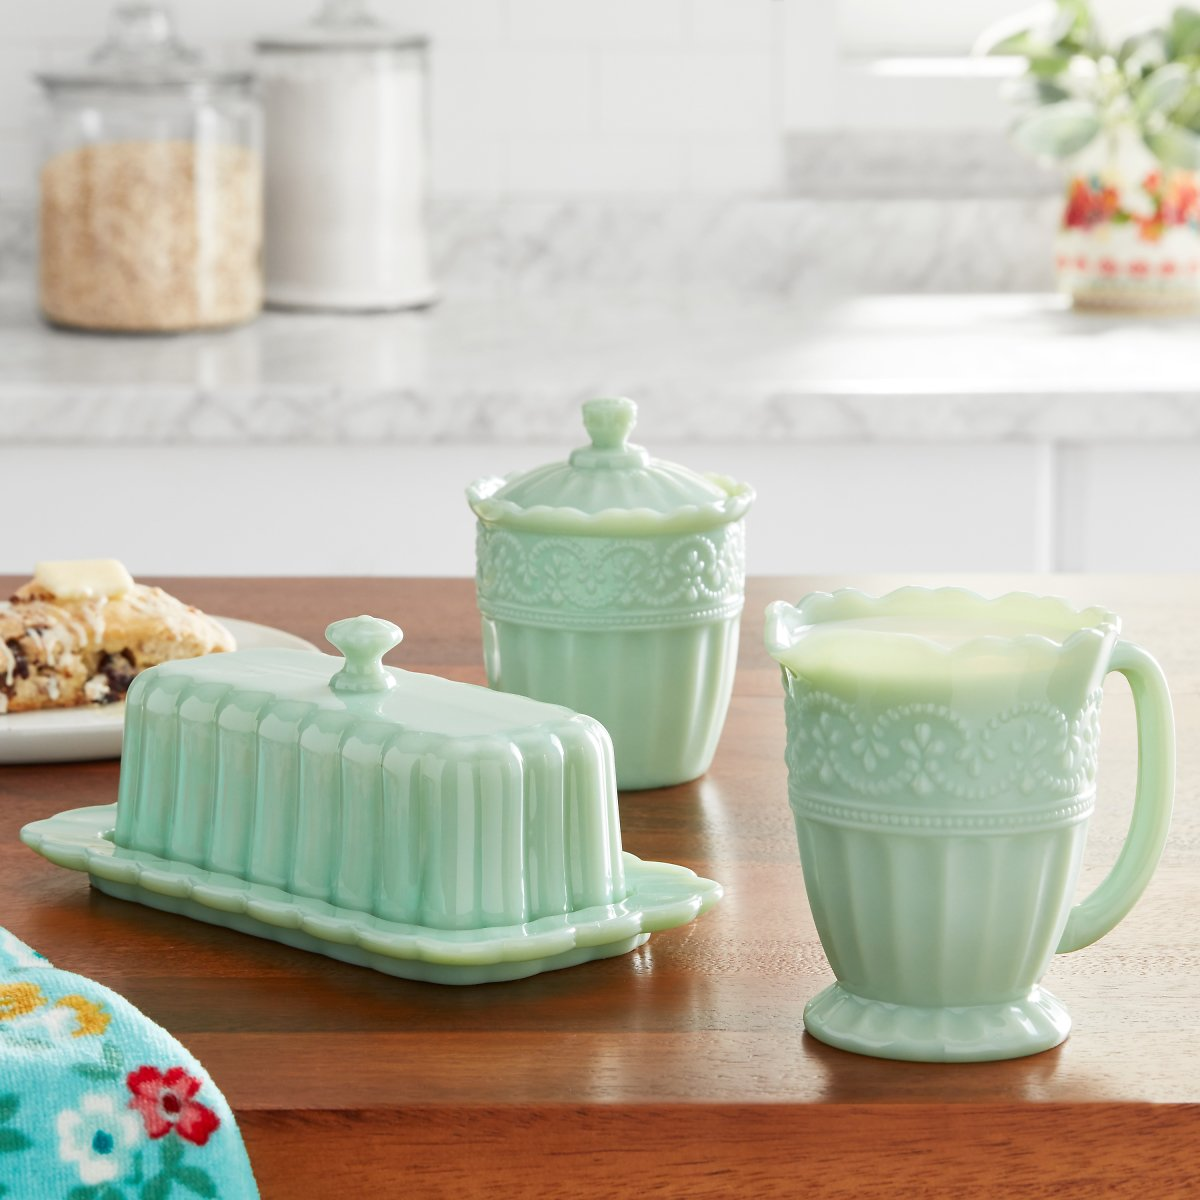 The Pioneer Woman Timeless Beauty 3-Piece Sugar Bowl, Creamer & Butter Dish Set